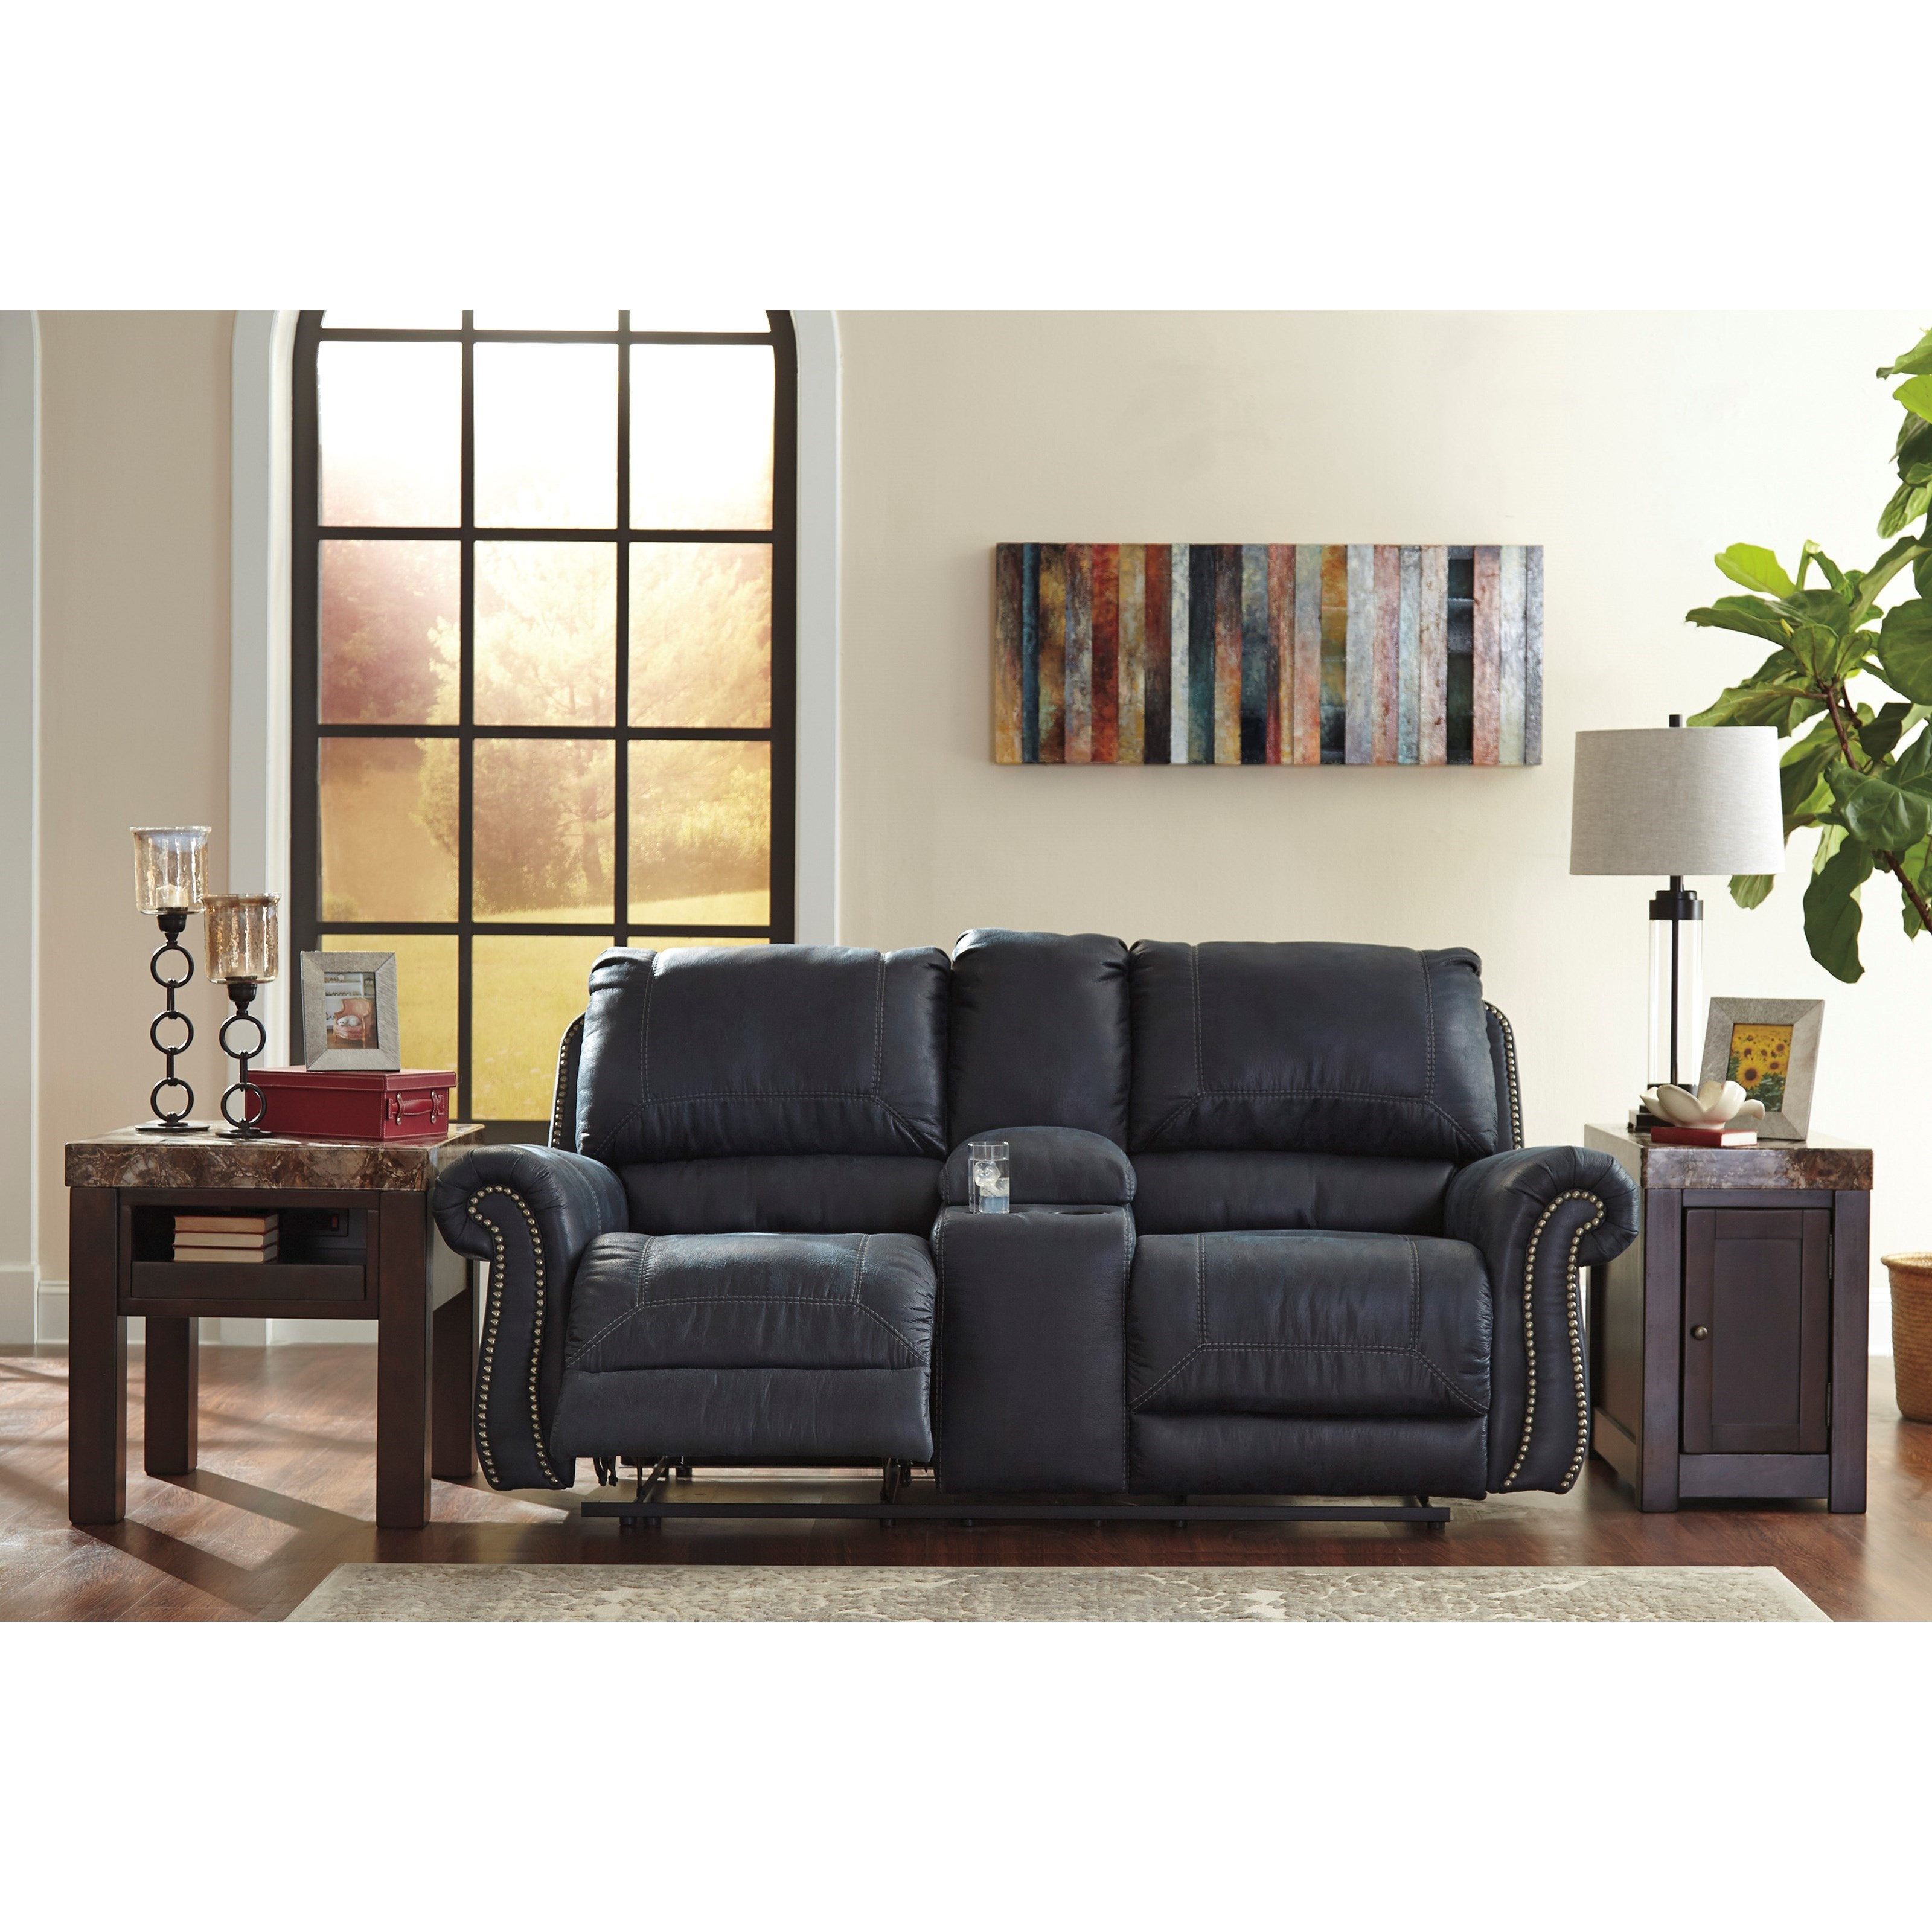 Signature Design by Ashley Milhaven Double Reclining Power